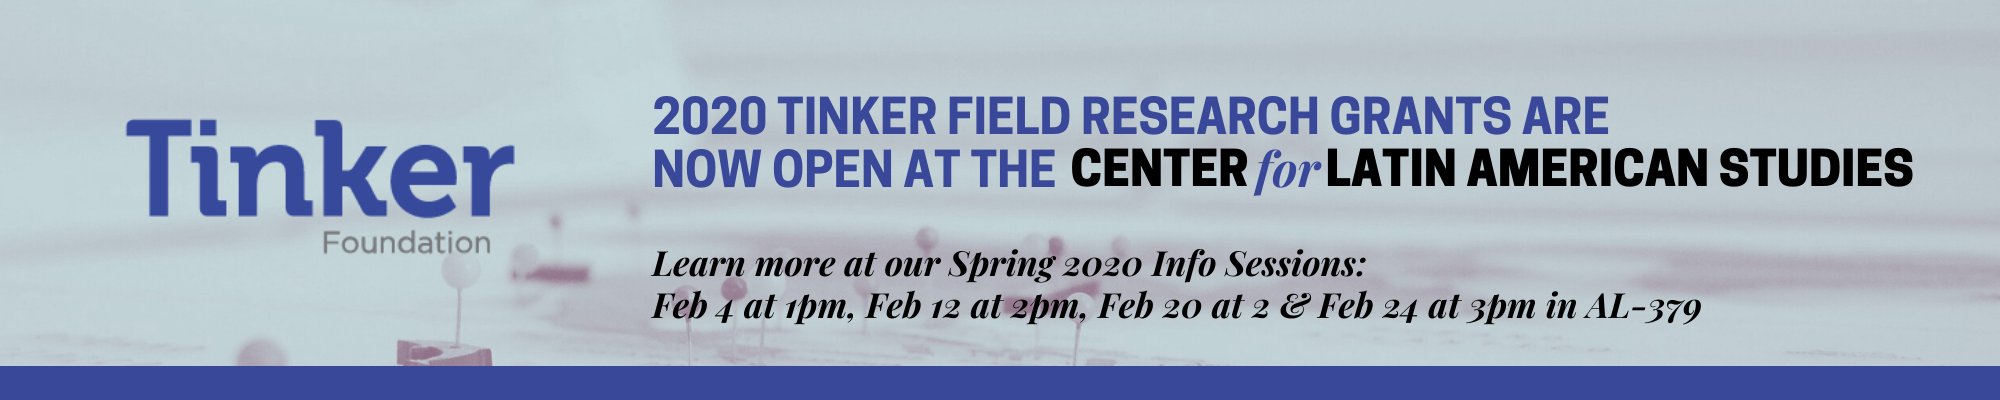 2020 TINKER FIELD RESEARCH GRANTS ARE  NOW OPEN AT THE CENTERforLATIN AMERICAN STUDIES  Learn more at our Spring 2020 Info Se.sions:  Feb 4 at 1pm, Feb 12 at 2pm, Feb 20 at 2 & Feb 24 at 3pm in AL-379